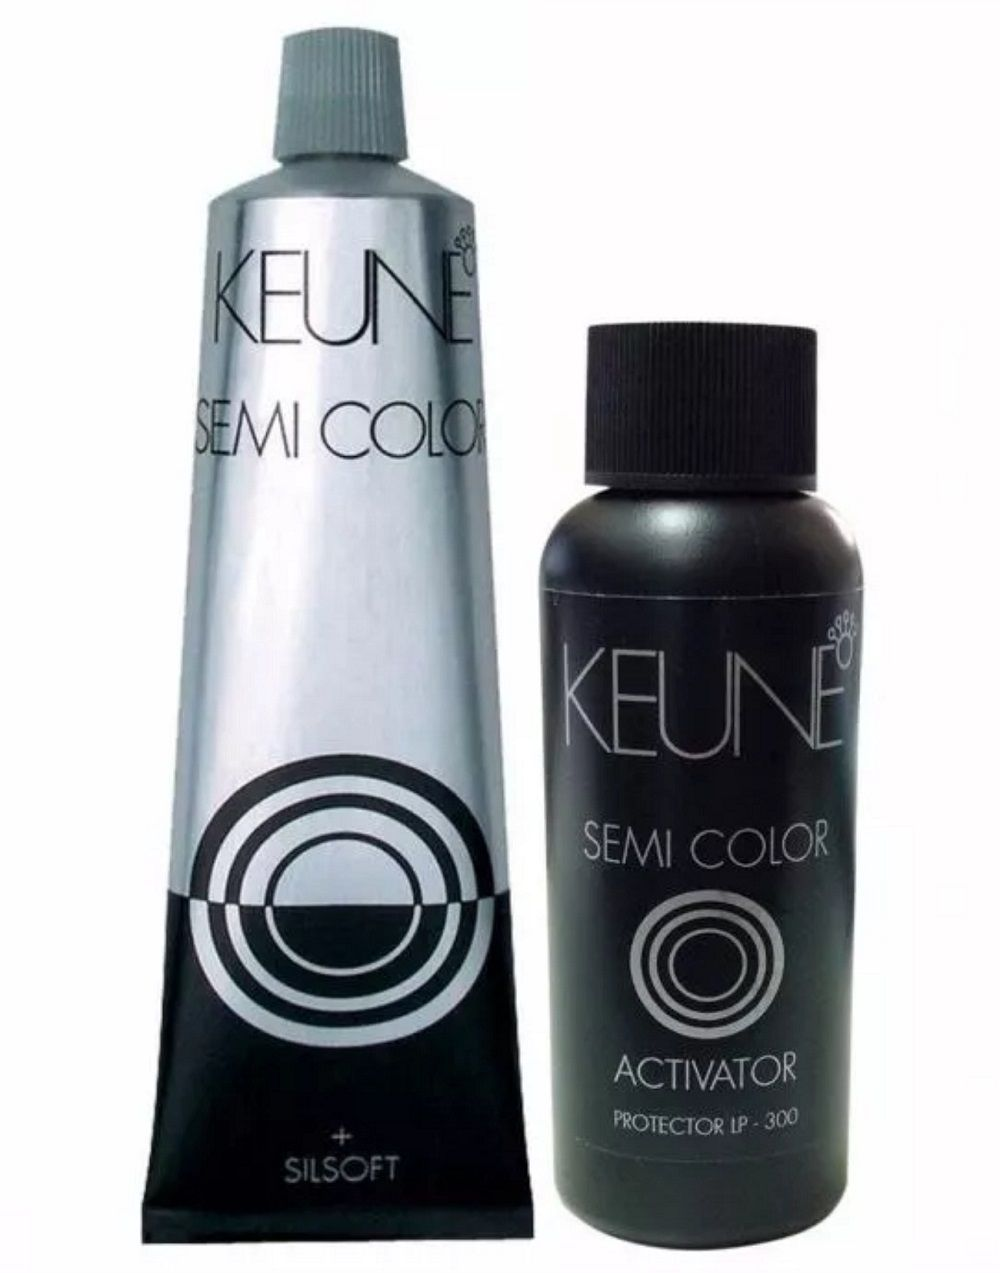 Kit Keune Tonalizante 60ml - Mix 0/44 - Cobre + Ativador 60ml